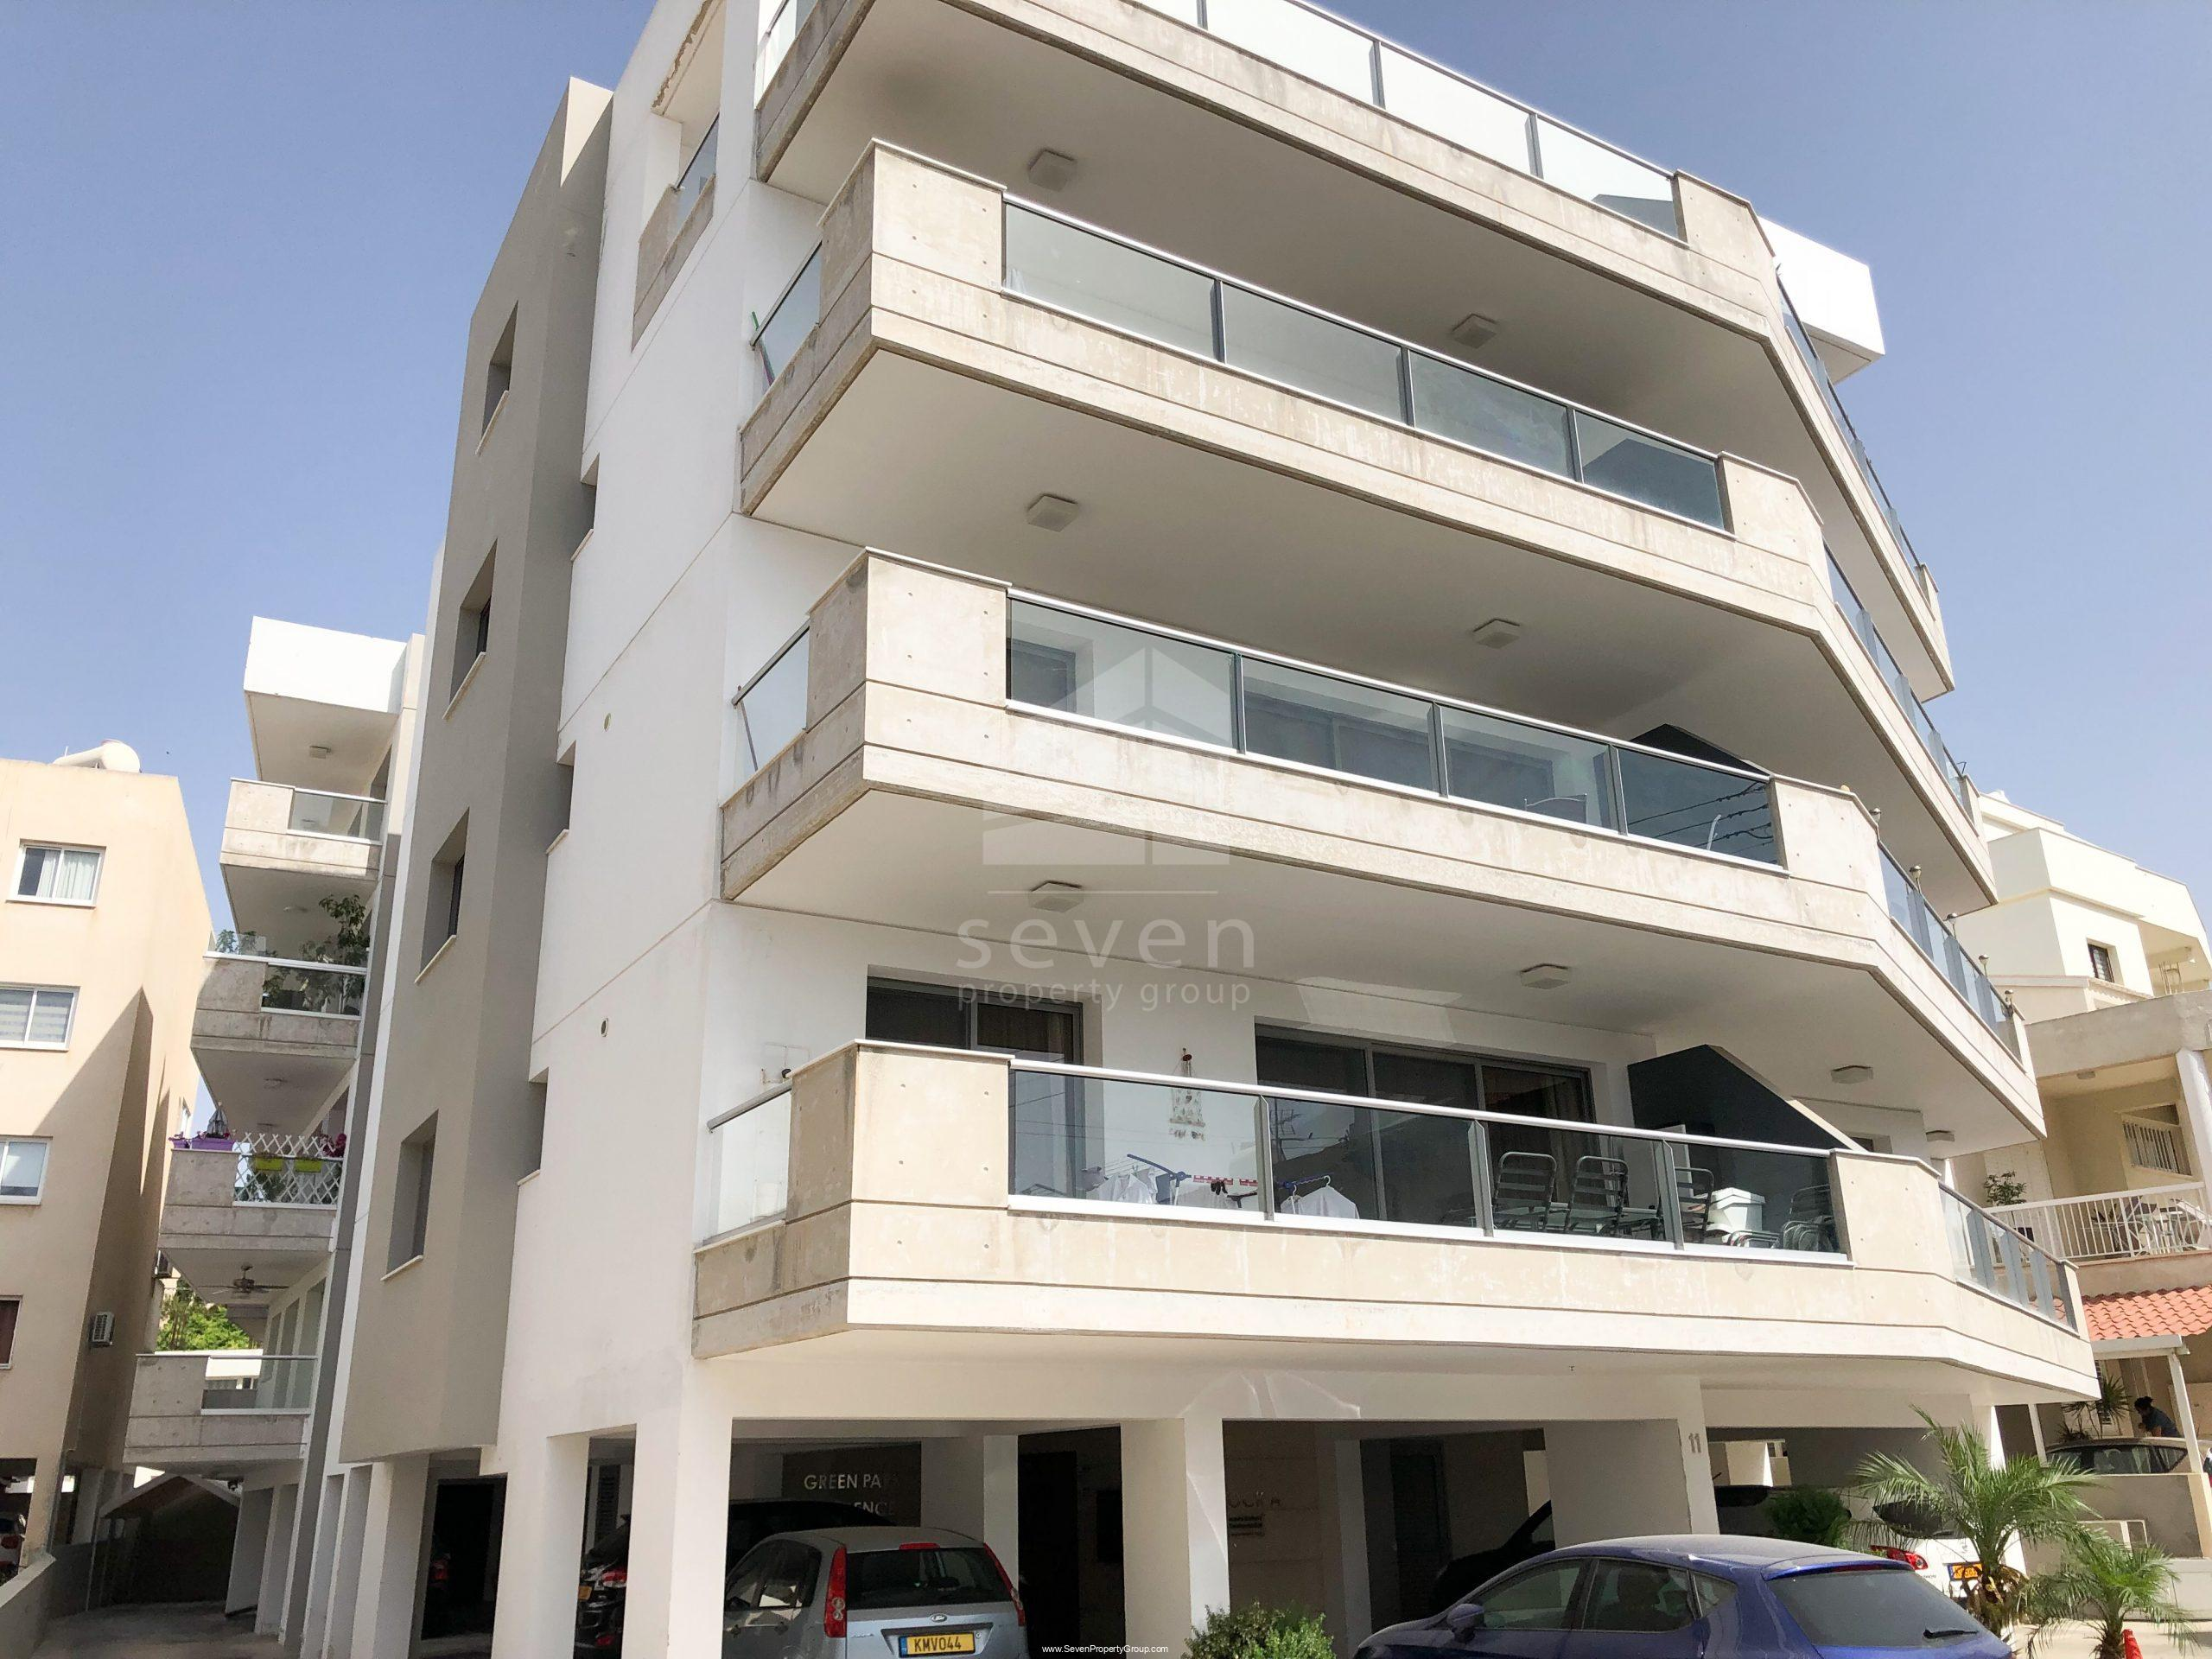 3BED PENTHOUSE FOR SALE IN AMERICAN ACADEMY